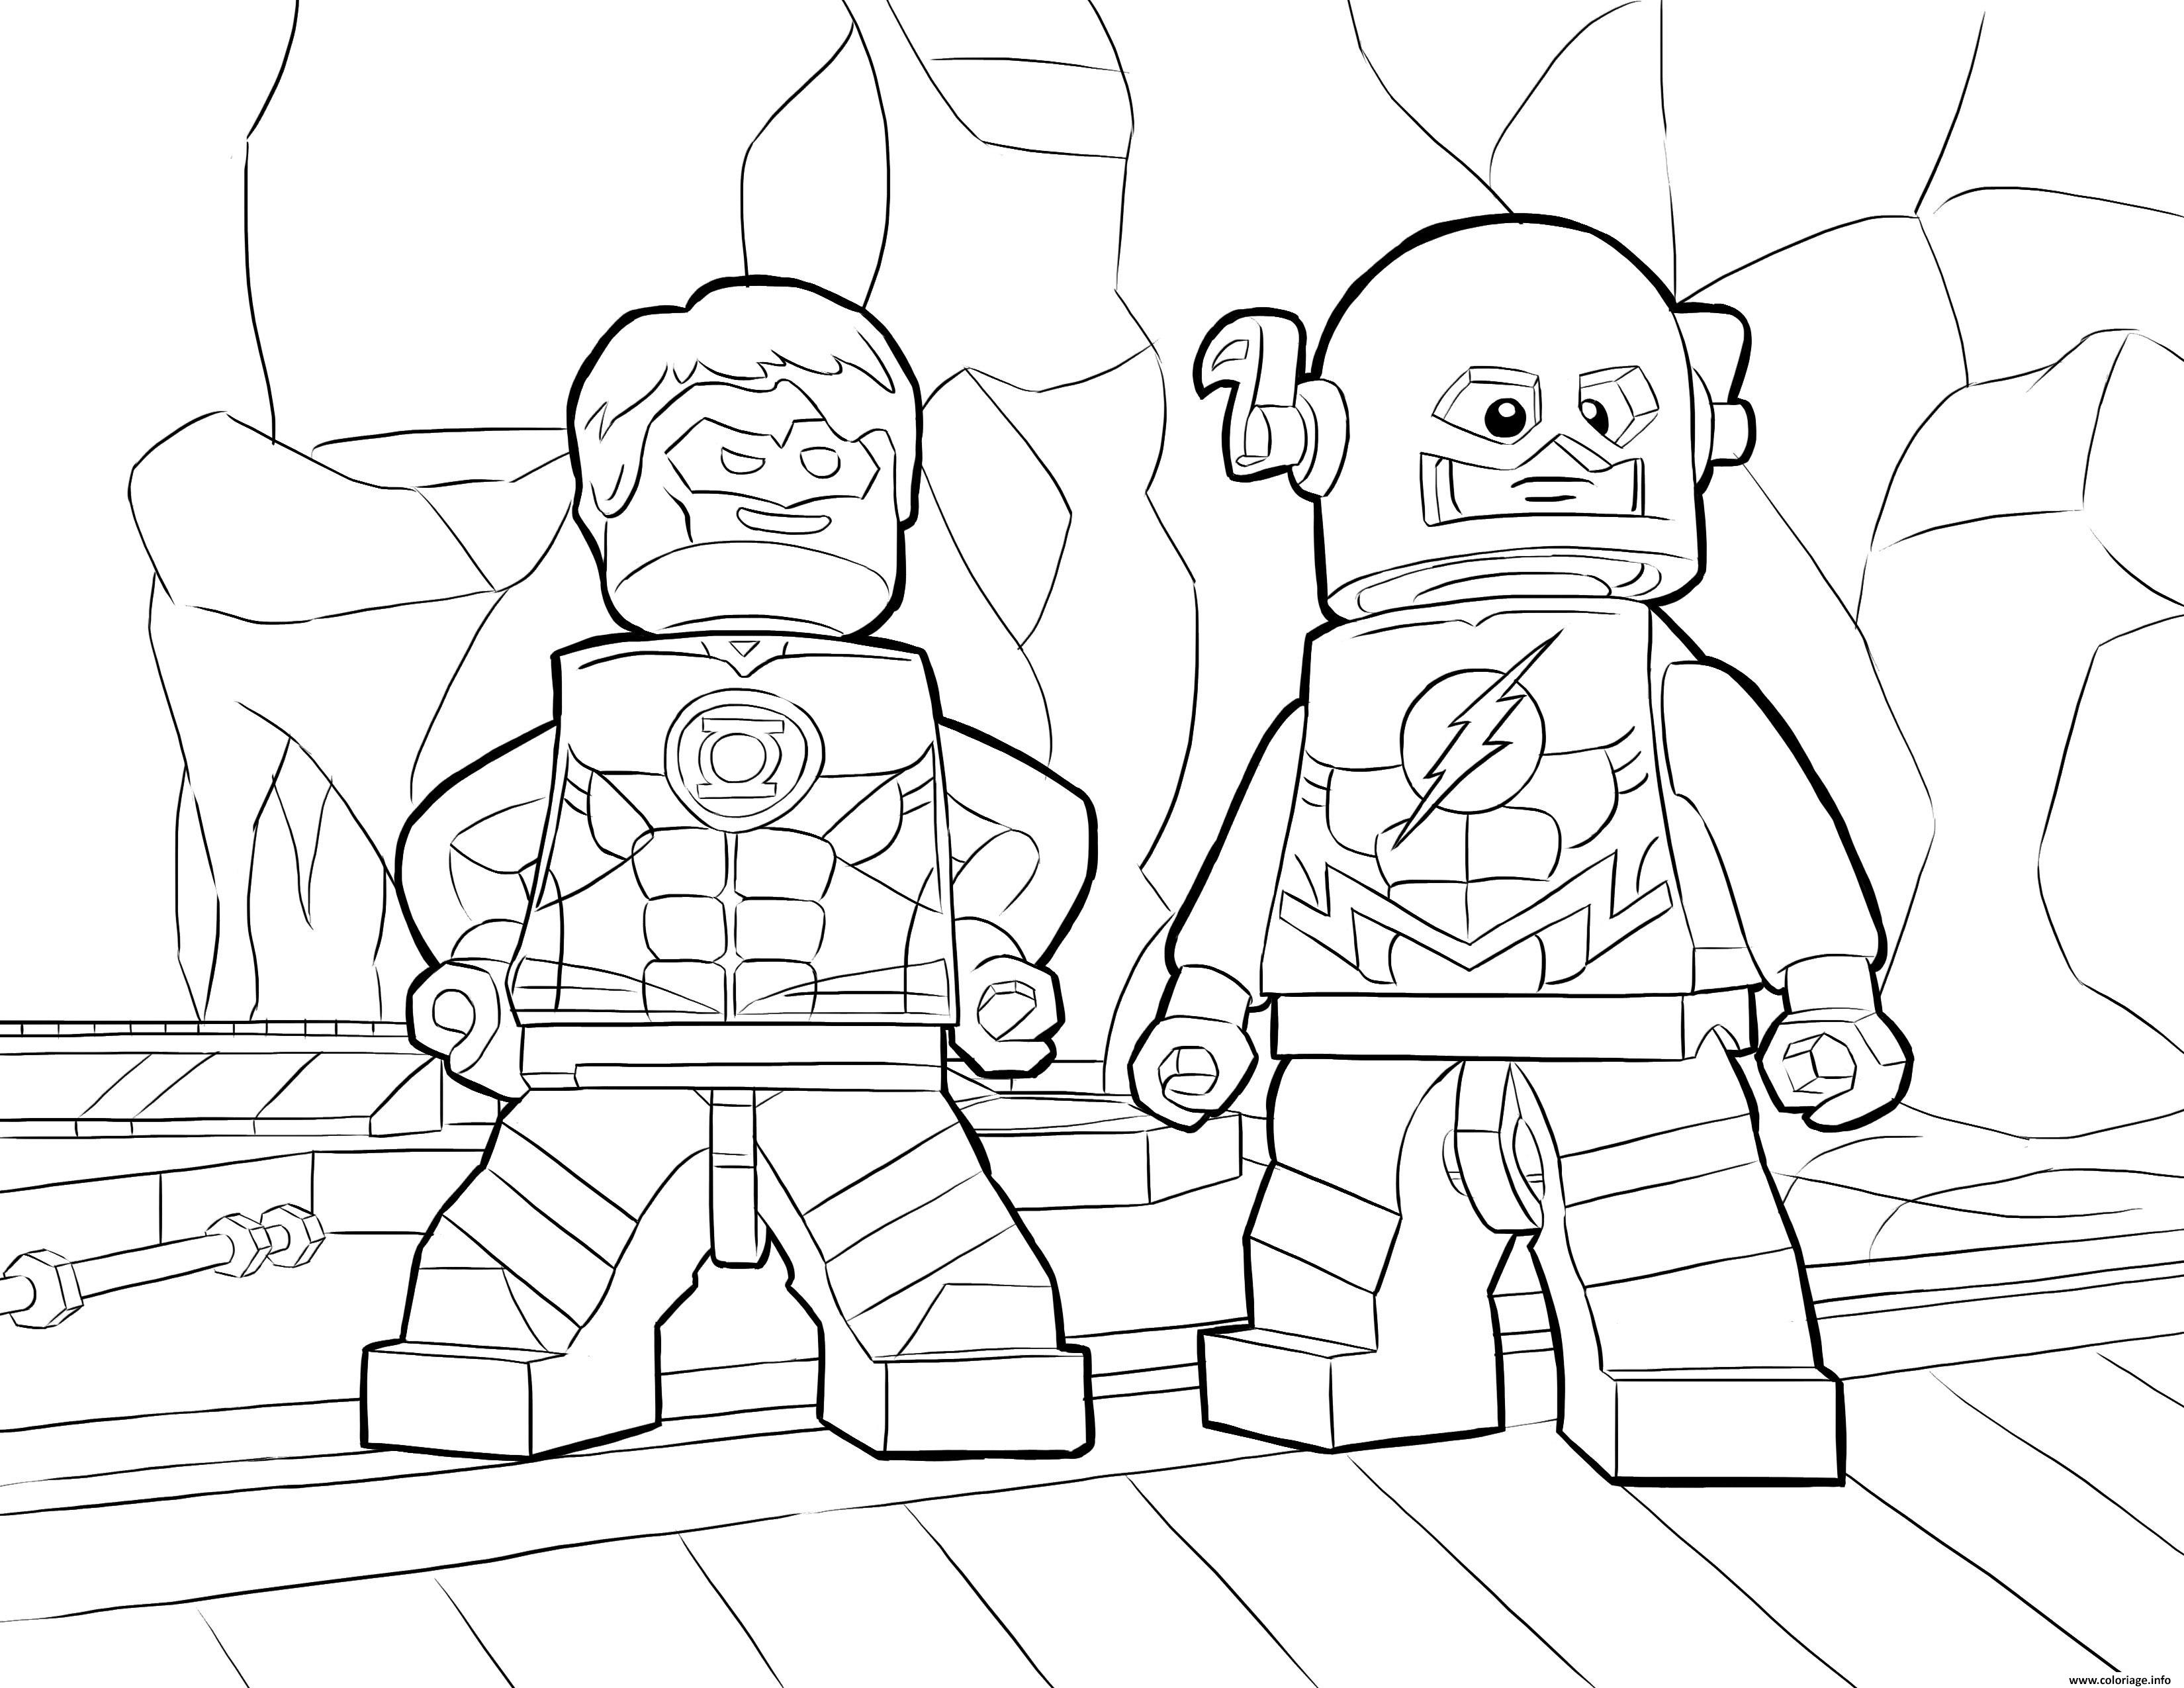 lego justice league coloring pages lego justice league coloring pages for kids in 2020 lego coloring lego league pages justice